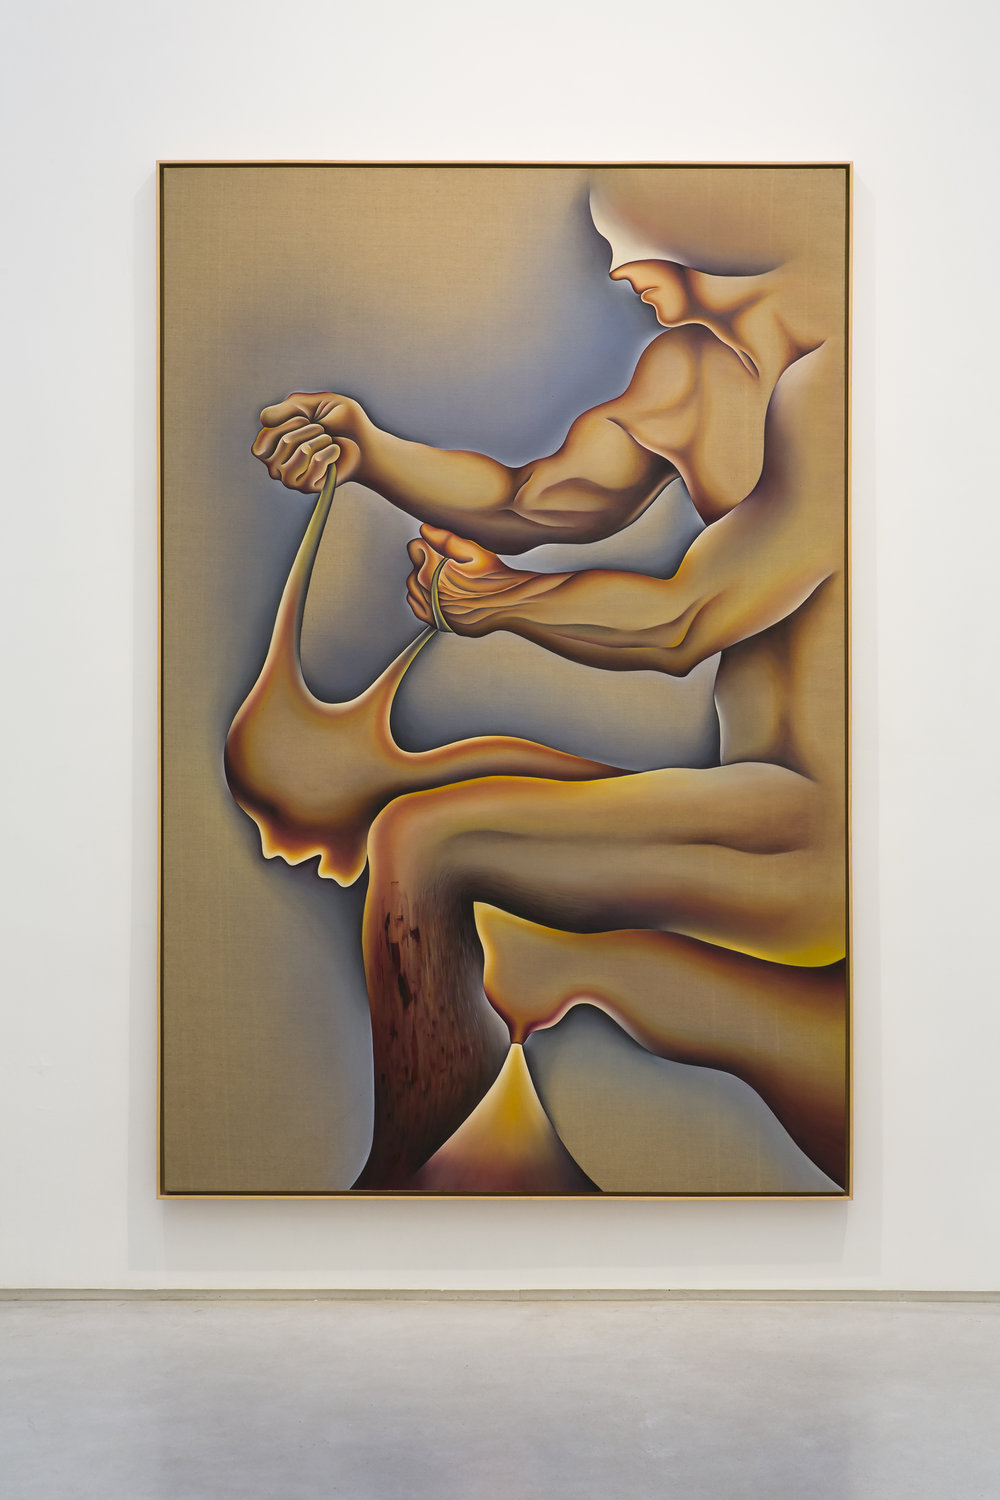 Judy Chicago -  Crippled by the Need to Control/Blind Individuality , 1983, Sprayed acrylic and oil on Belgian Linen, framed dimensions: 109 1/2 x 73 1/2 x 2 inches. Image courtesy Salon 94.